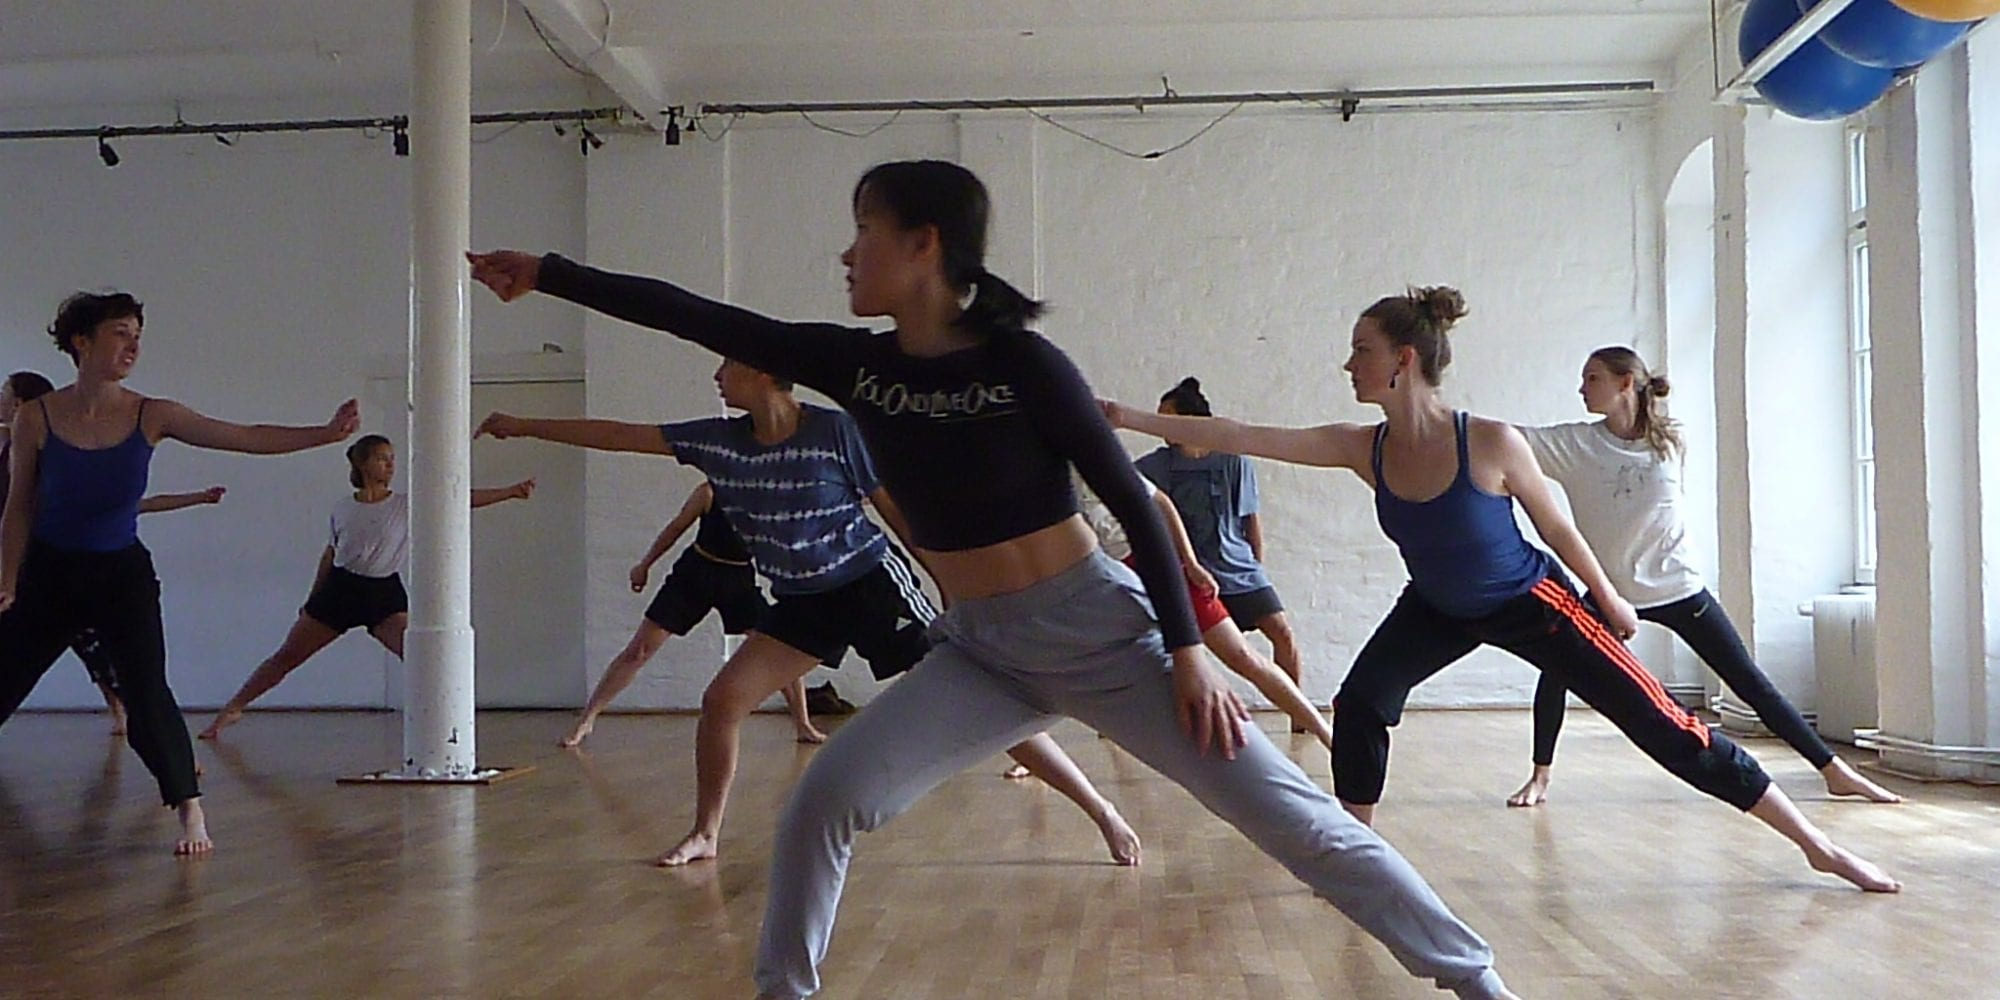 VCA Dancers at Tanzfabrik, Berlin. Workshop with choreographer Ayman Harper. By Anna Smith.